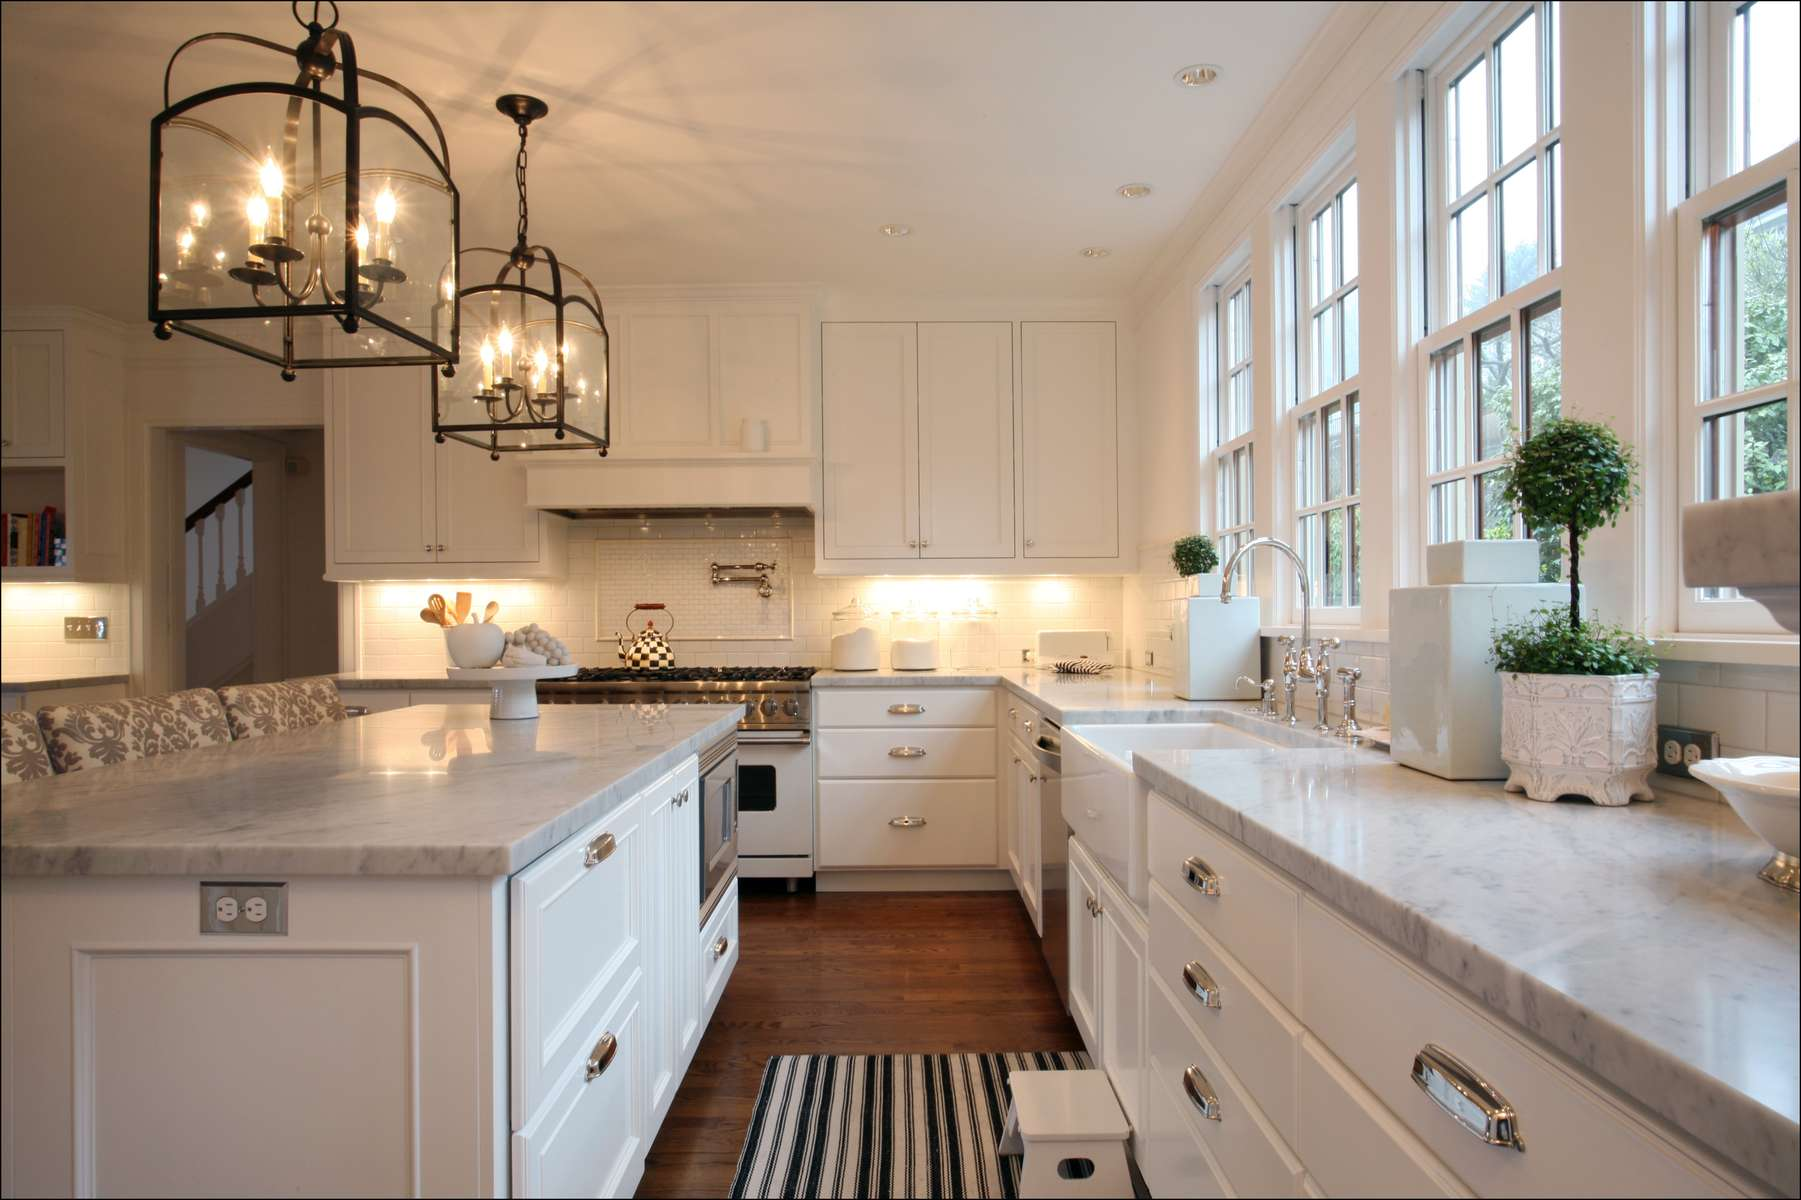 Image gallery home renovations kitchen colonial Kitchen design colonial home